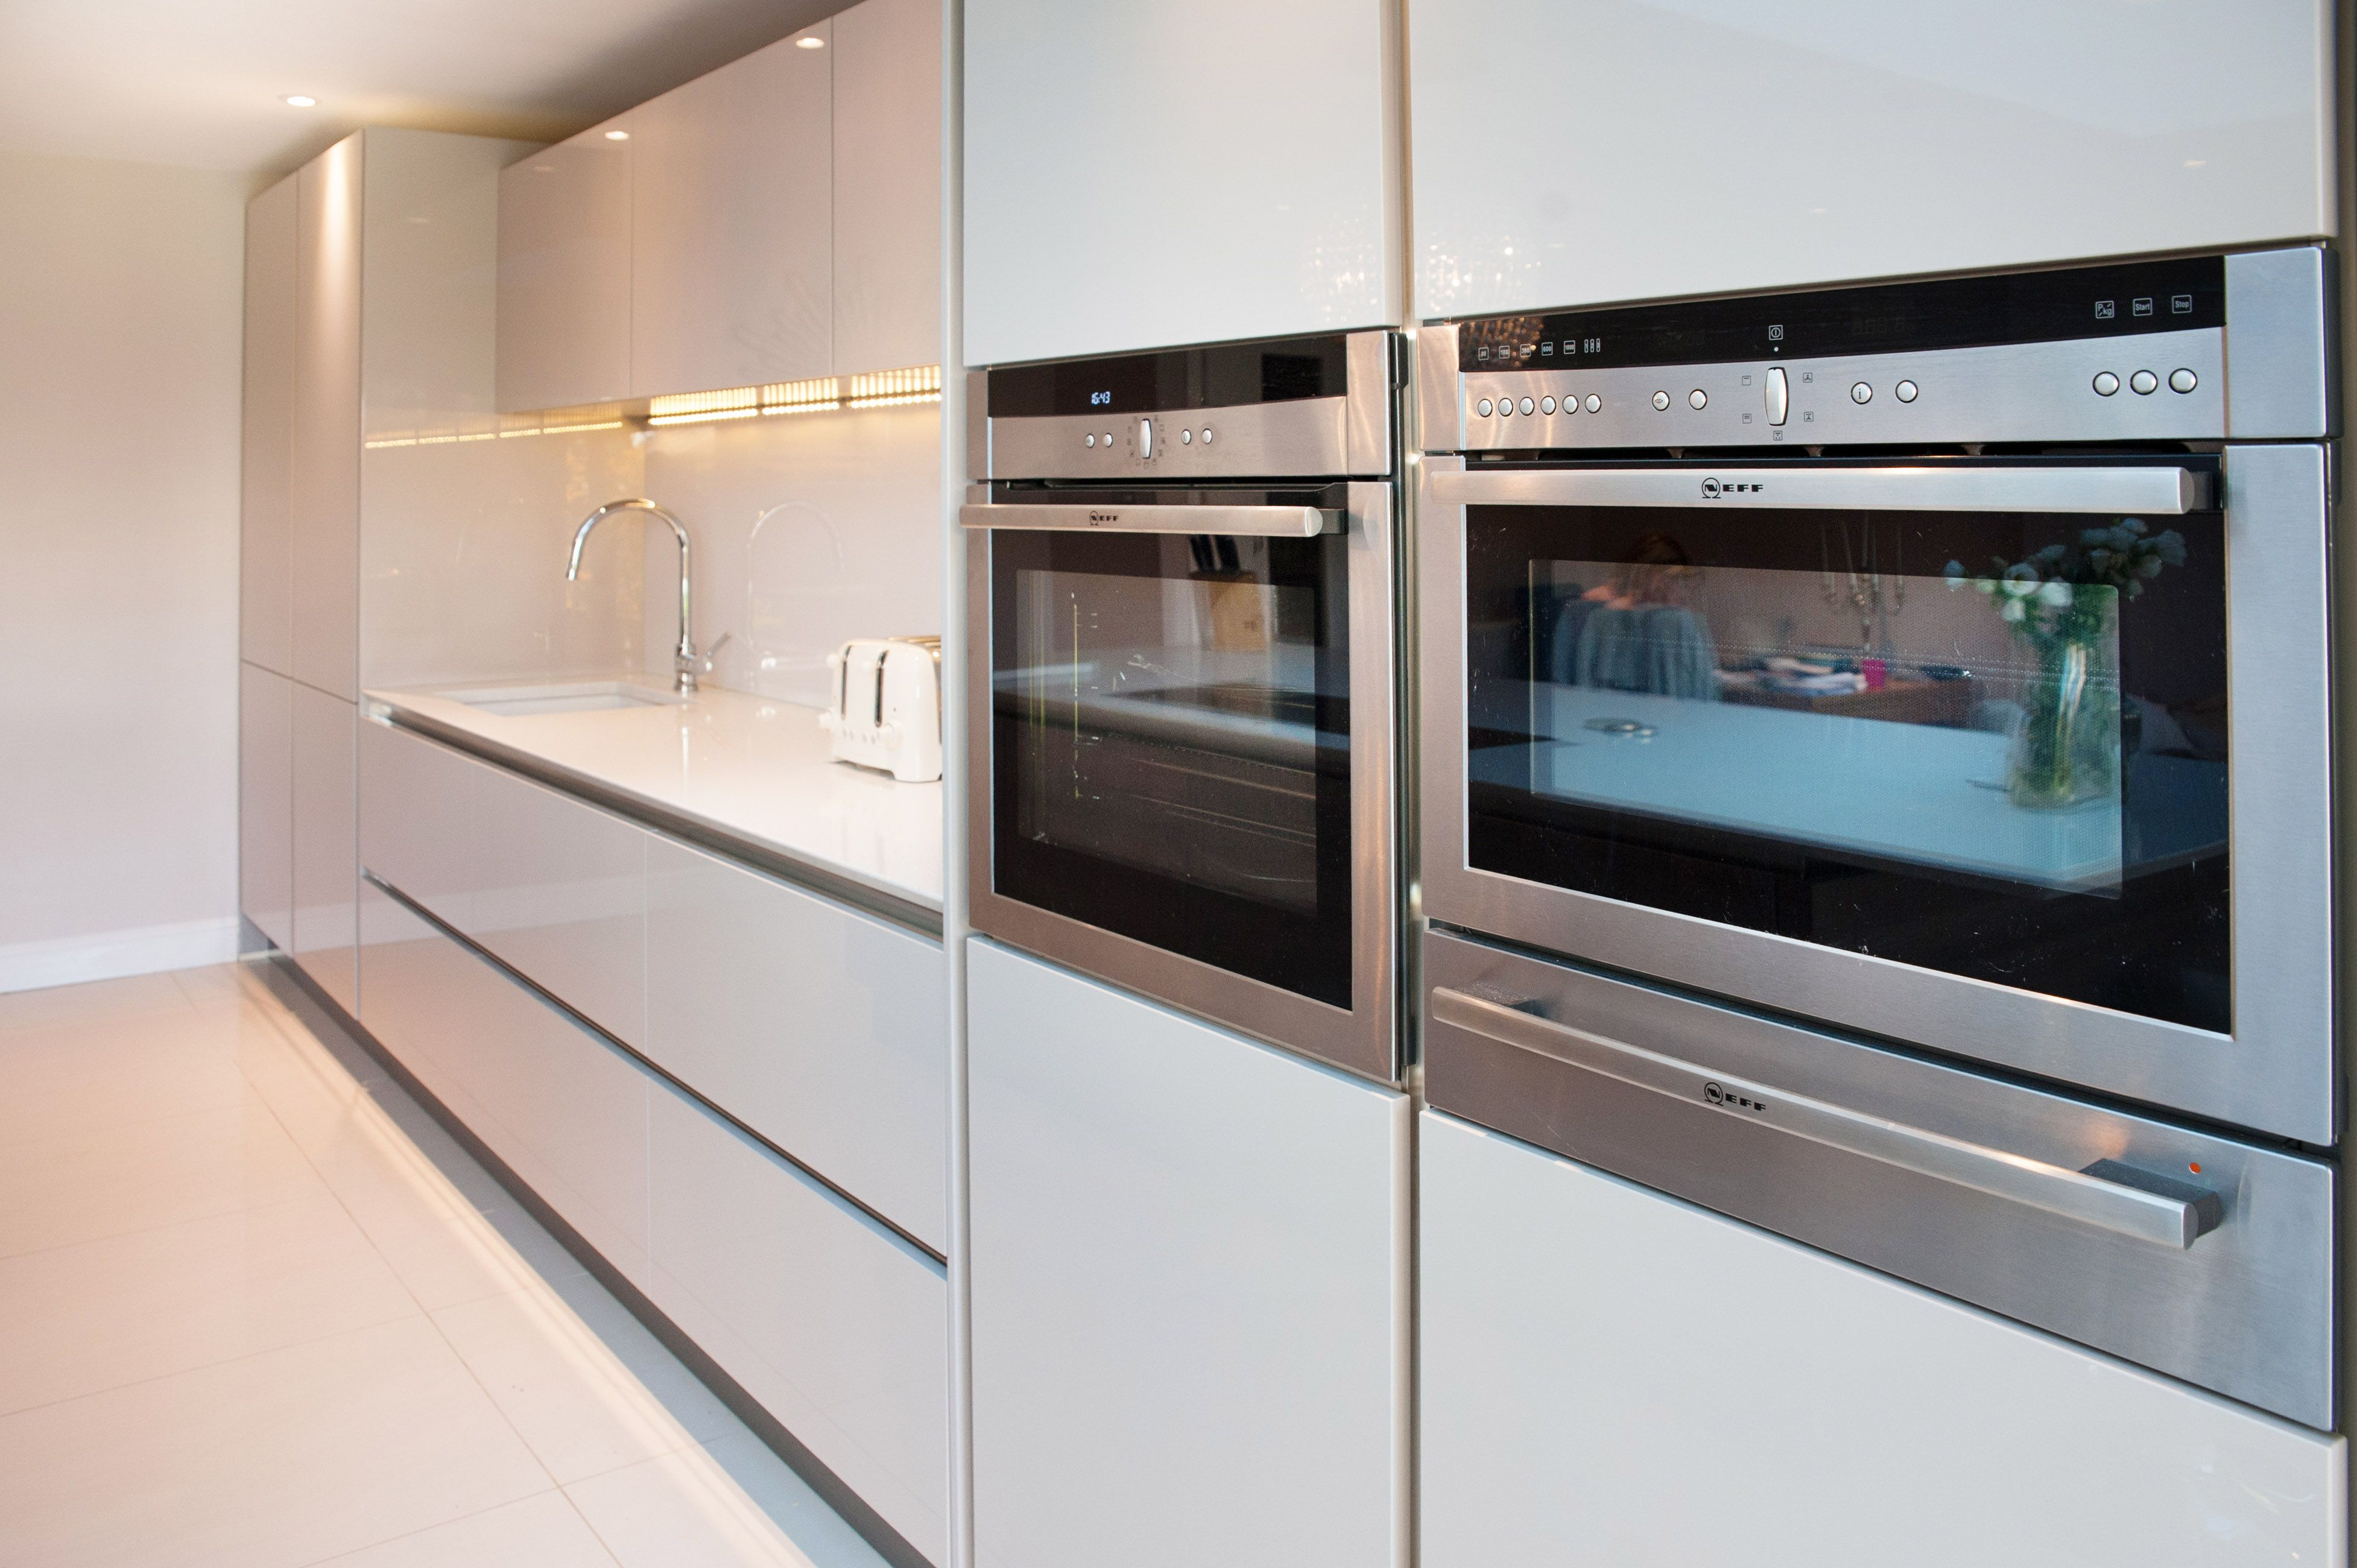 classic laser brilliant gloss cashmere true handleless and the large island is grey acacia work s german kitchen integrated oven open plan kitchen living room classic laser brilliant gloss cashmere